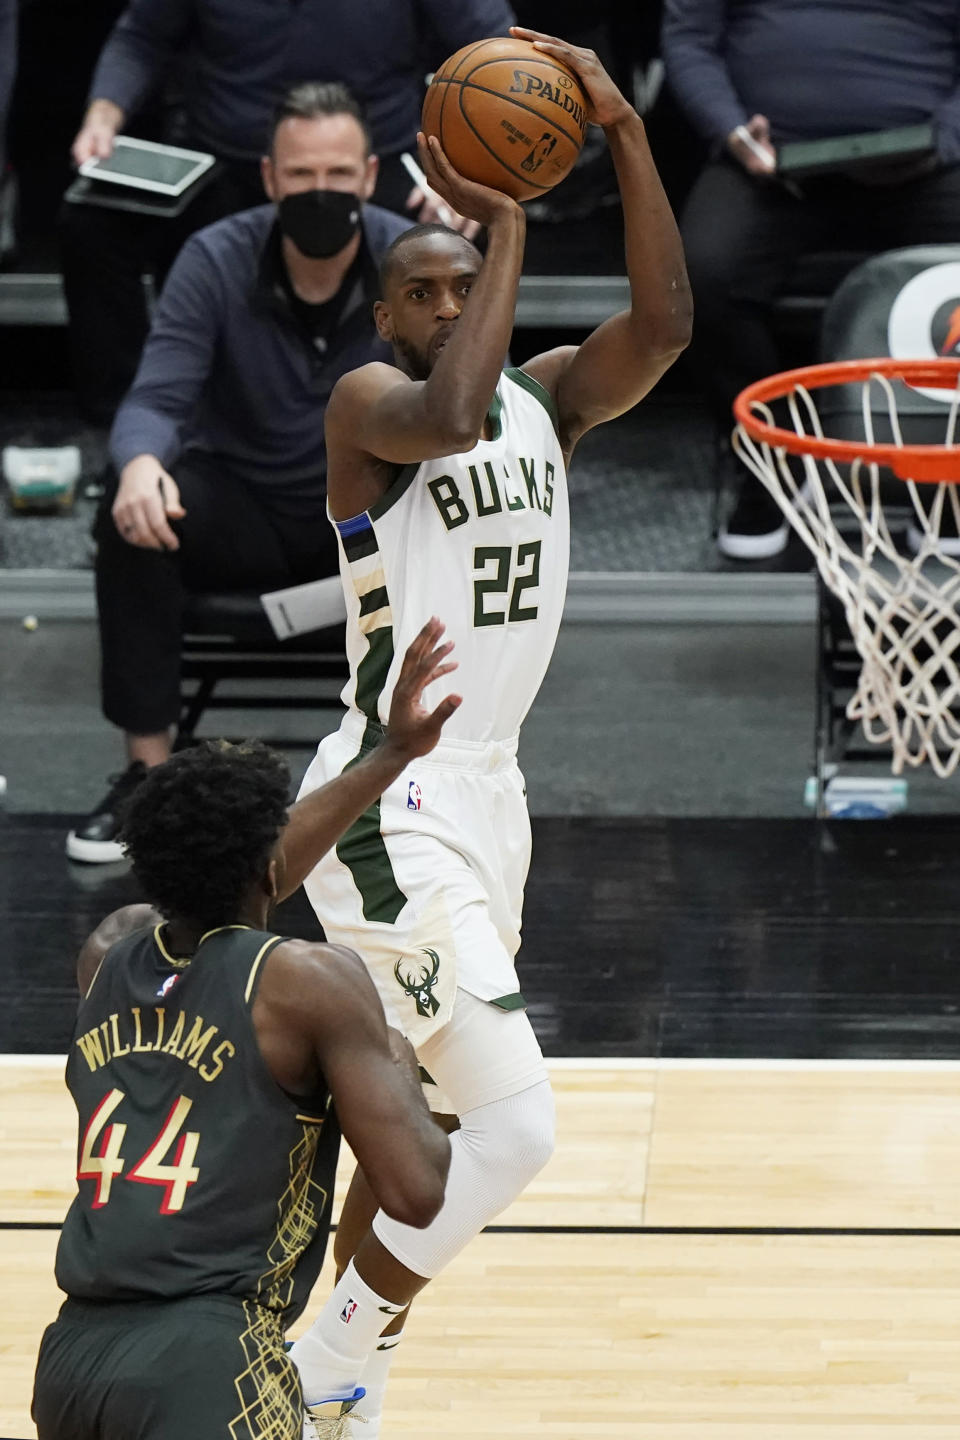 Milwaukee Bucks forward Khris Middleton, right, shoots against Chicago Bulls forward Patrick Williams during the first half of an NBA basketball game in Chicago, Friday, April 30, 2021. (AP Photo/Nam Y. Huh)